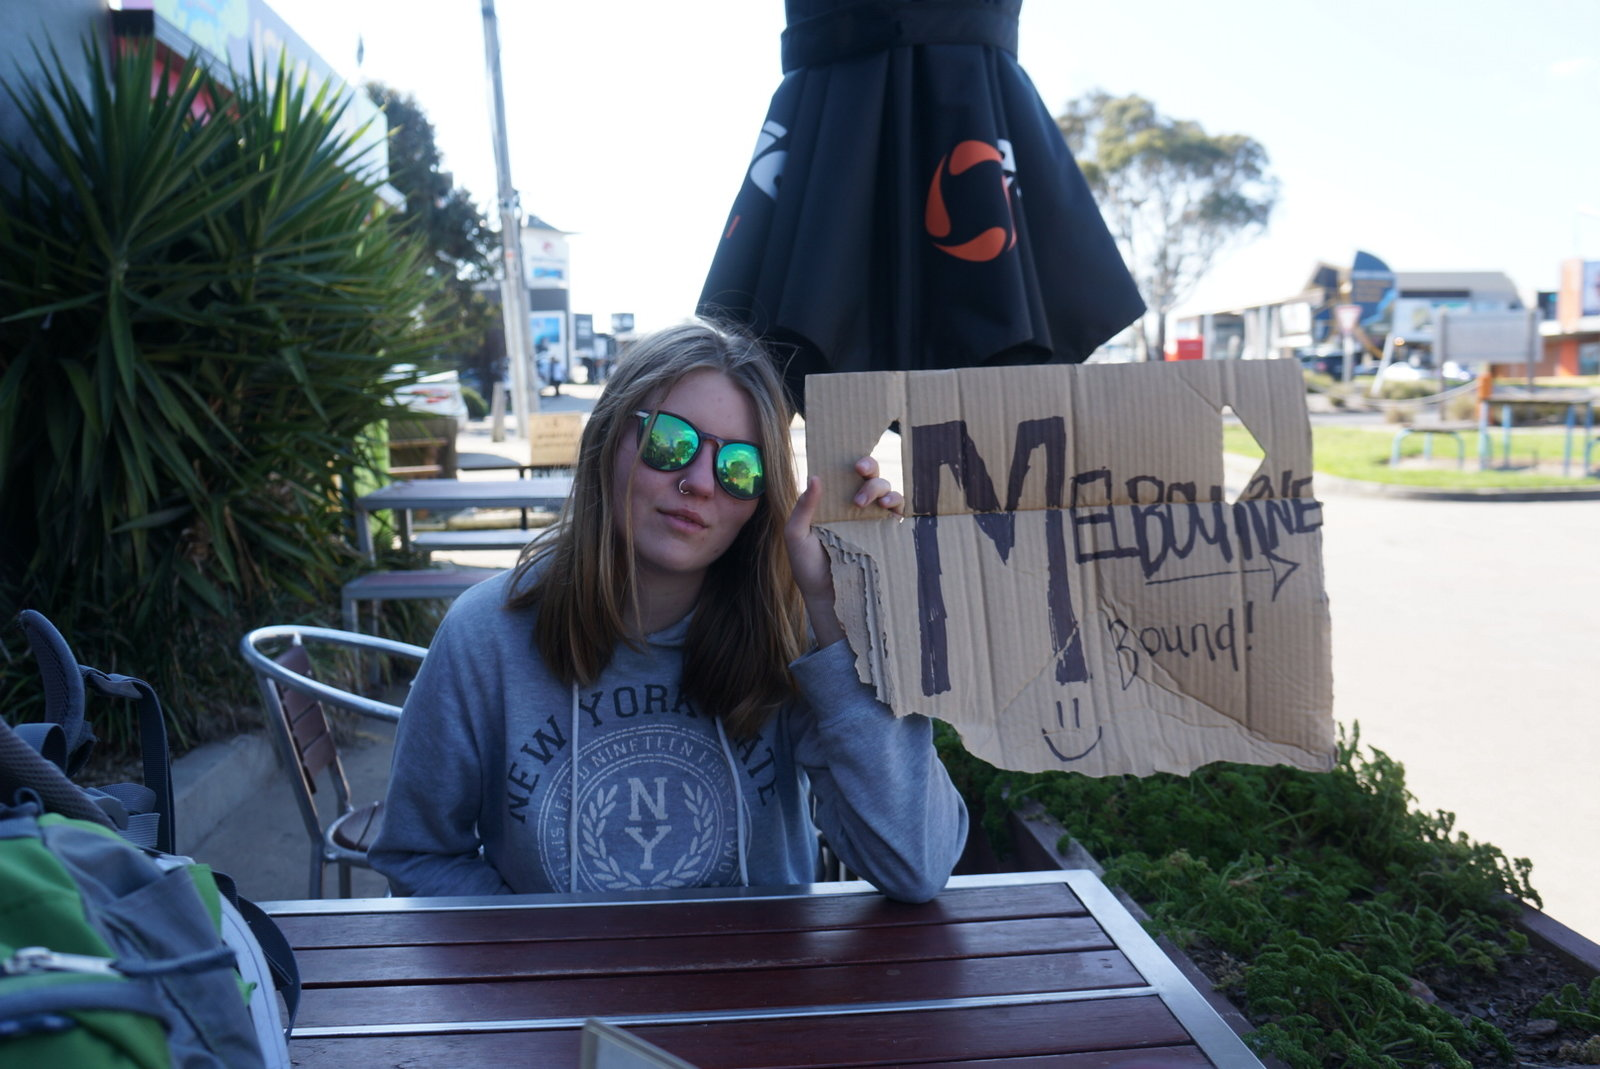 img_1567-jpg.32930_Hitchhiking the Great Ocean Road_Travel Stories_Squat the Planet_10:52 PM